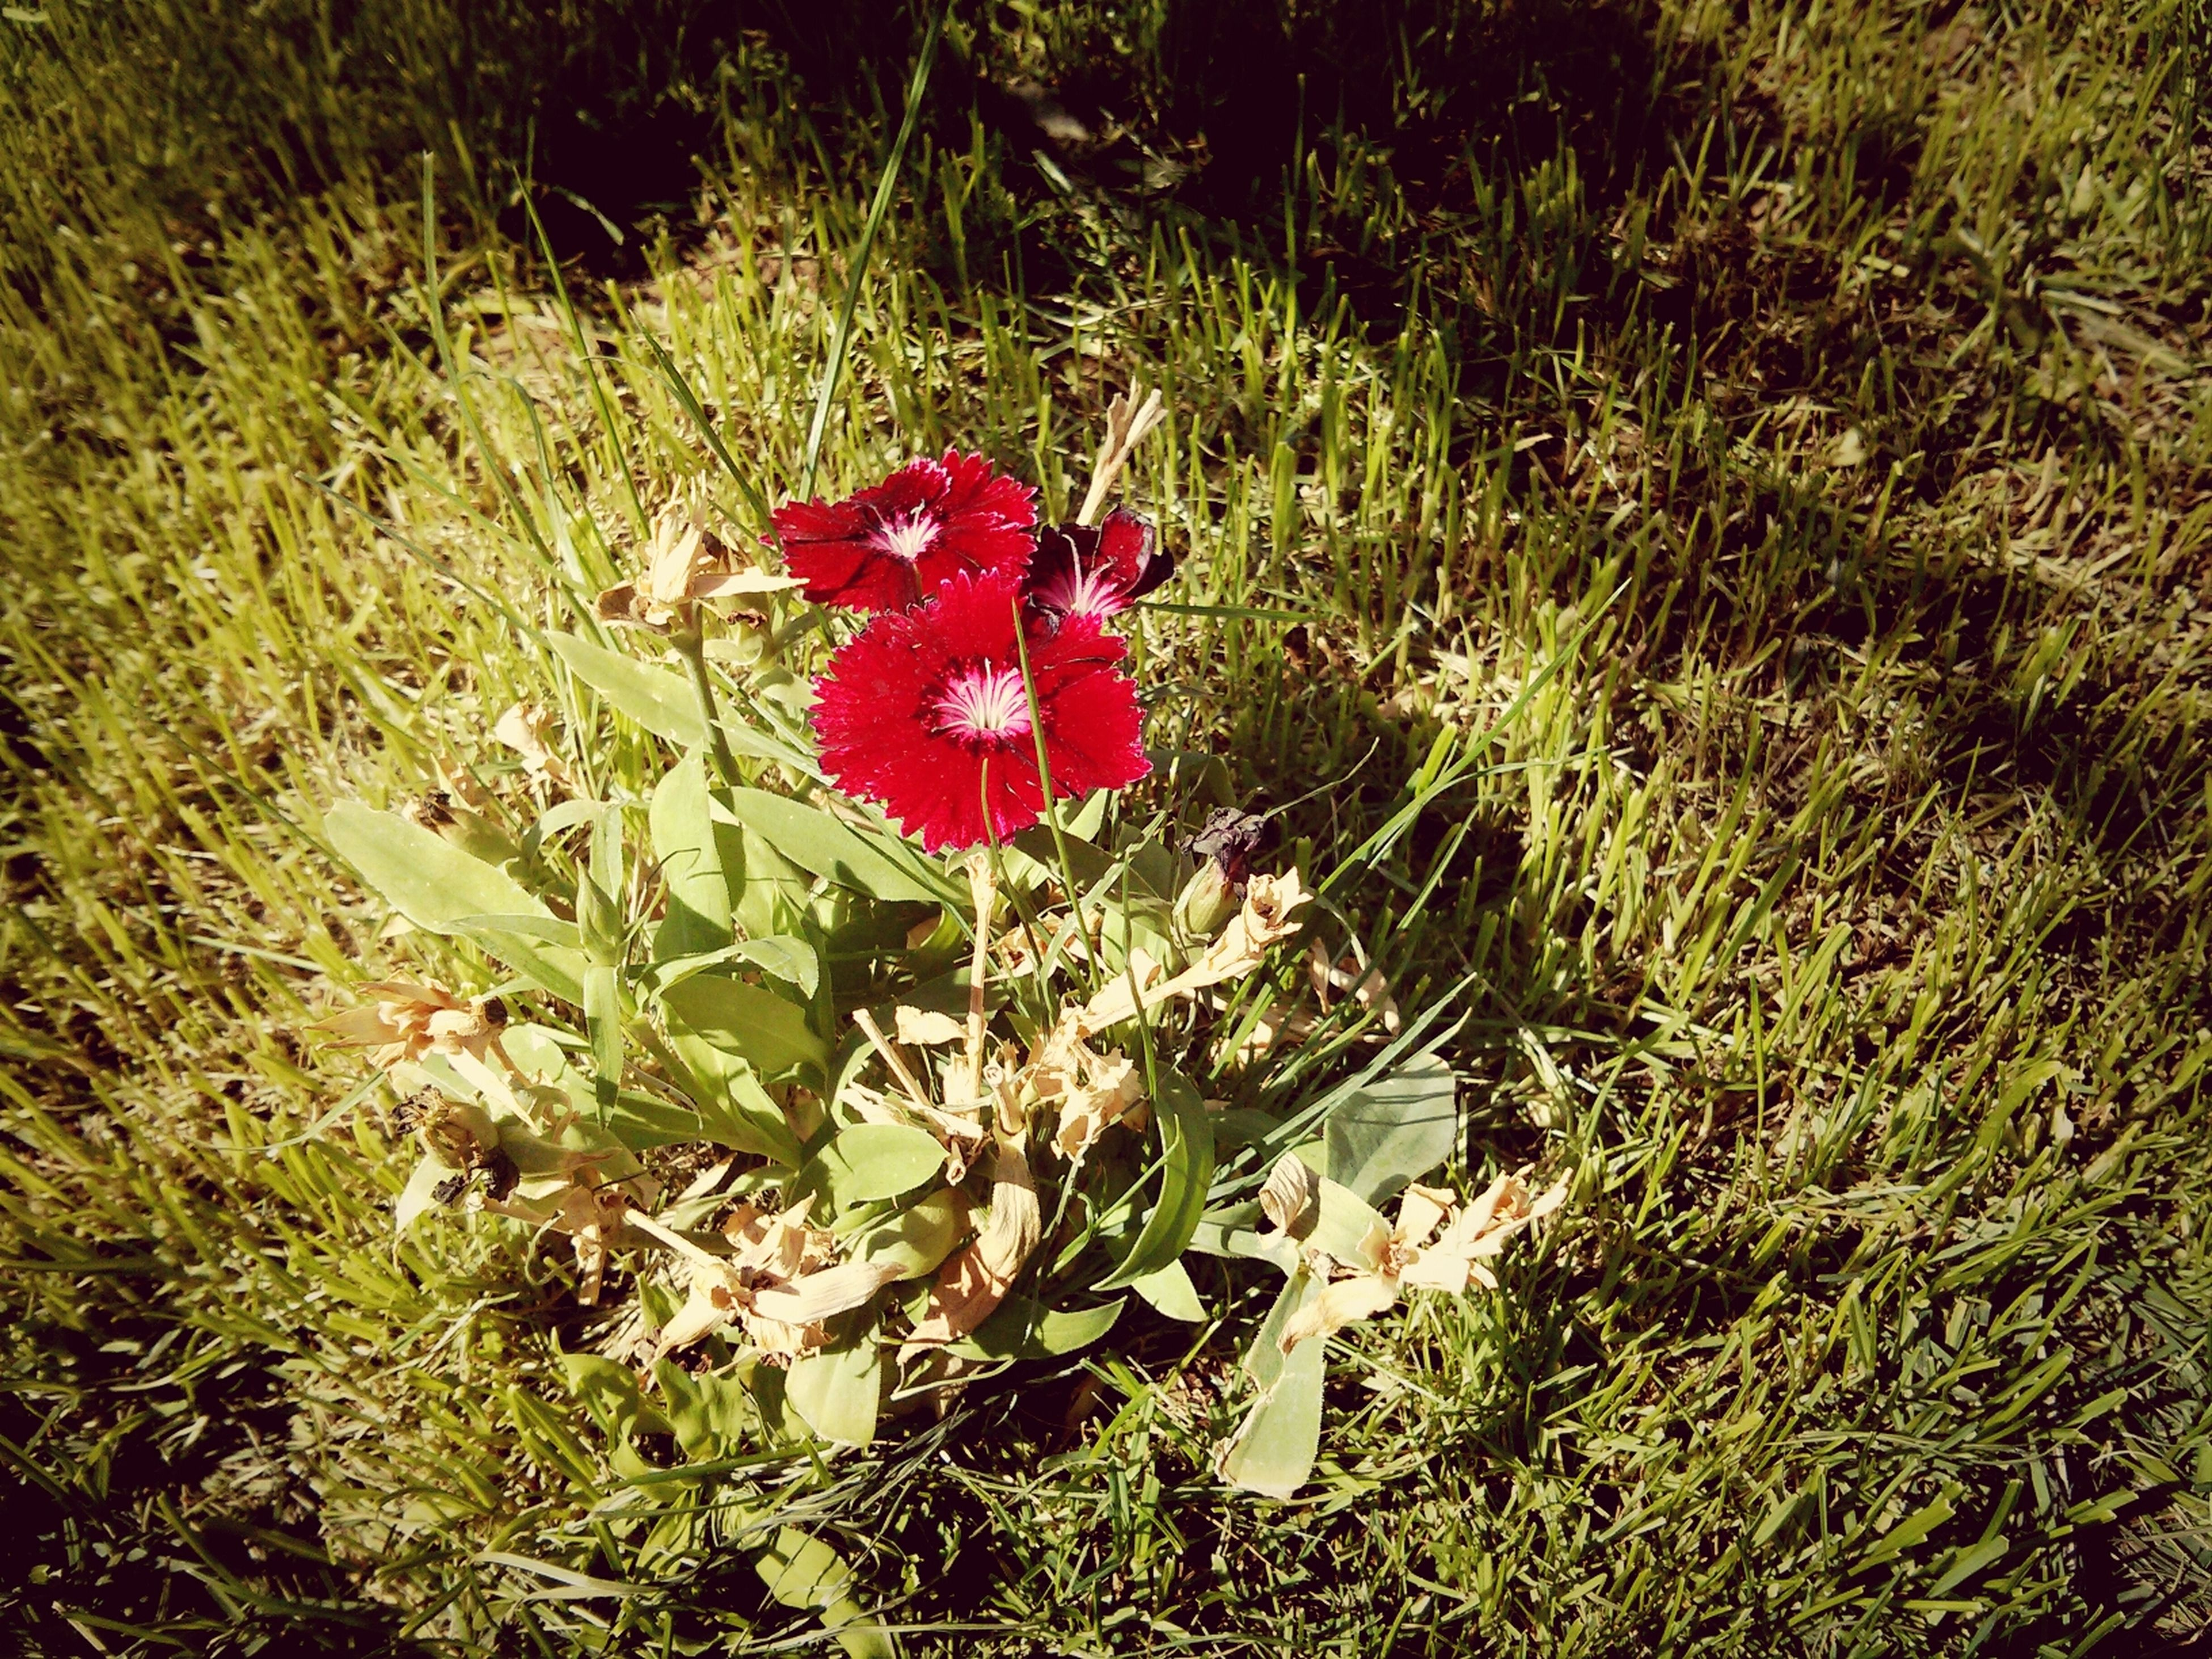 red, flower, growth, plant, grass, field, high angle view, freshness, petal, nature, beauty in nature, fragility, blooming, flower head, green color, day, close-up, outdoors, no people, grassy